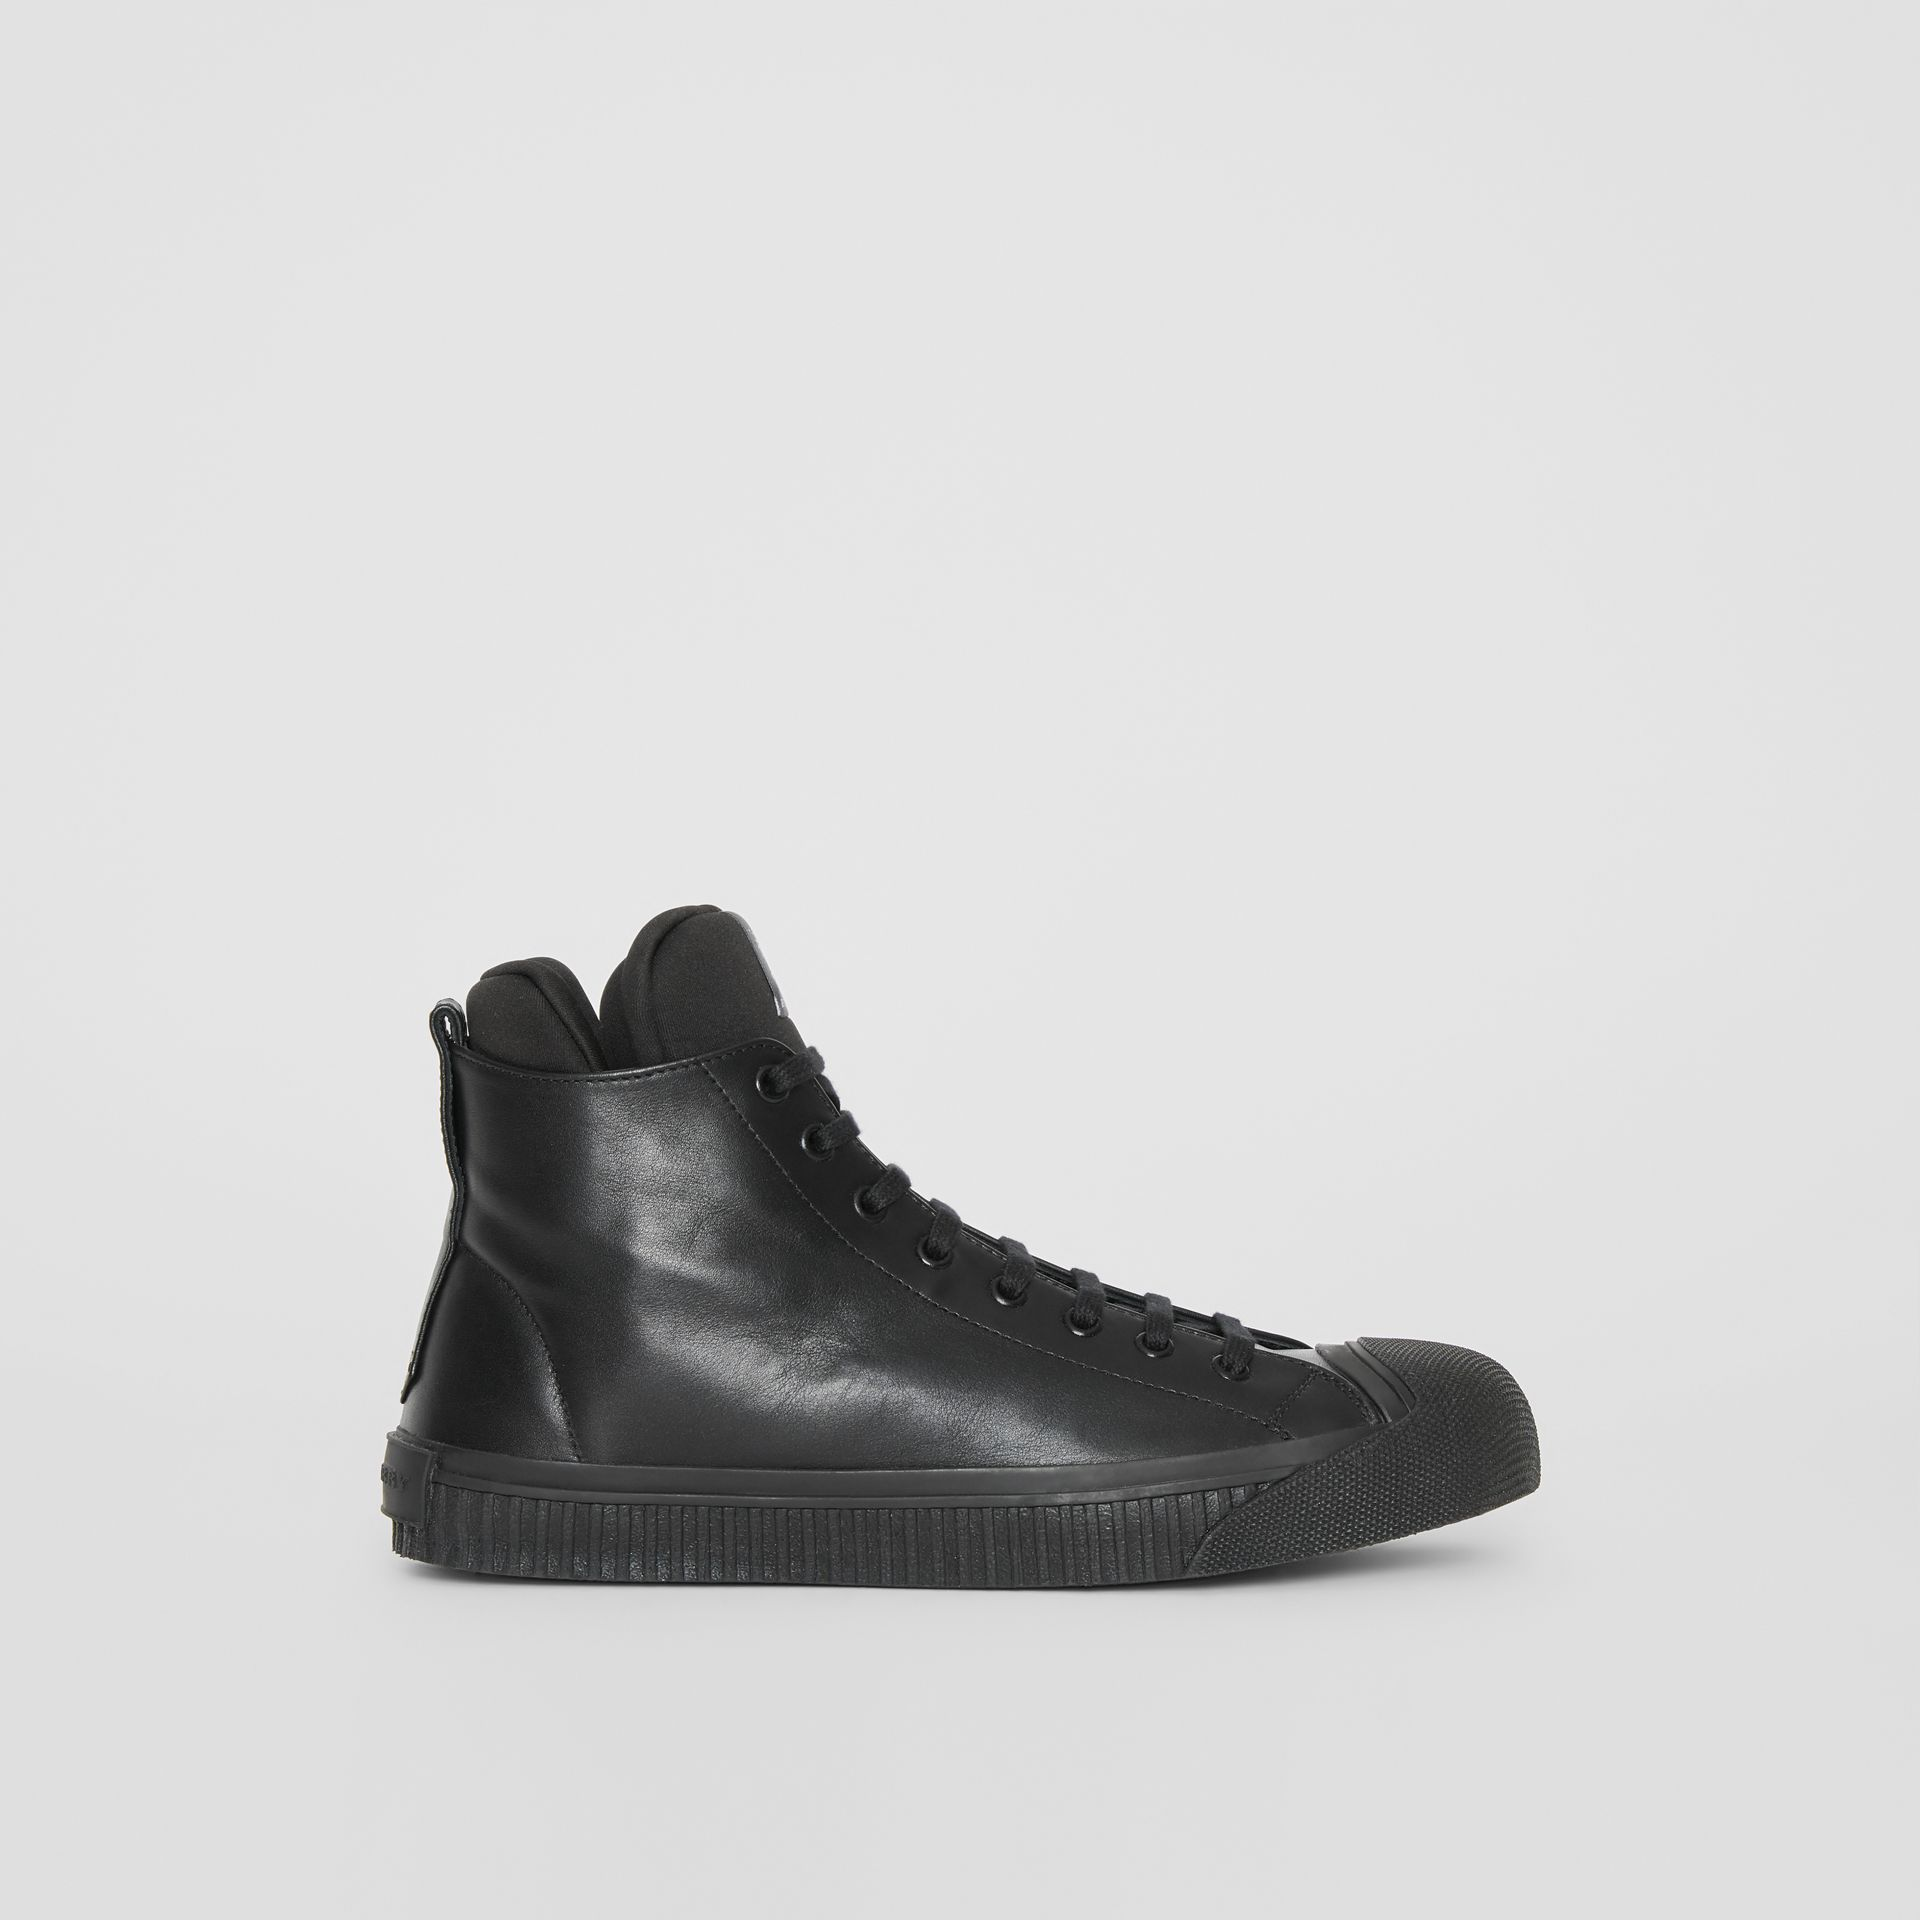 Leather and Neoprene High-top Sneakers in Black - Men | Burberry - gallery image 5